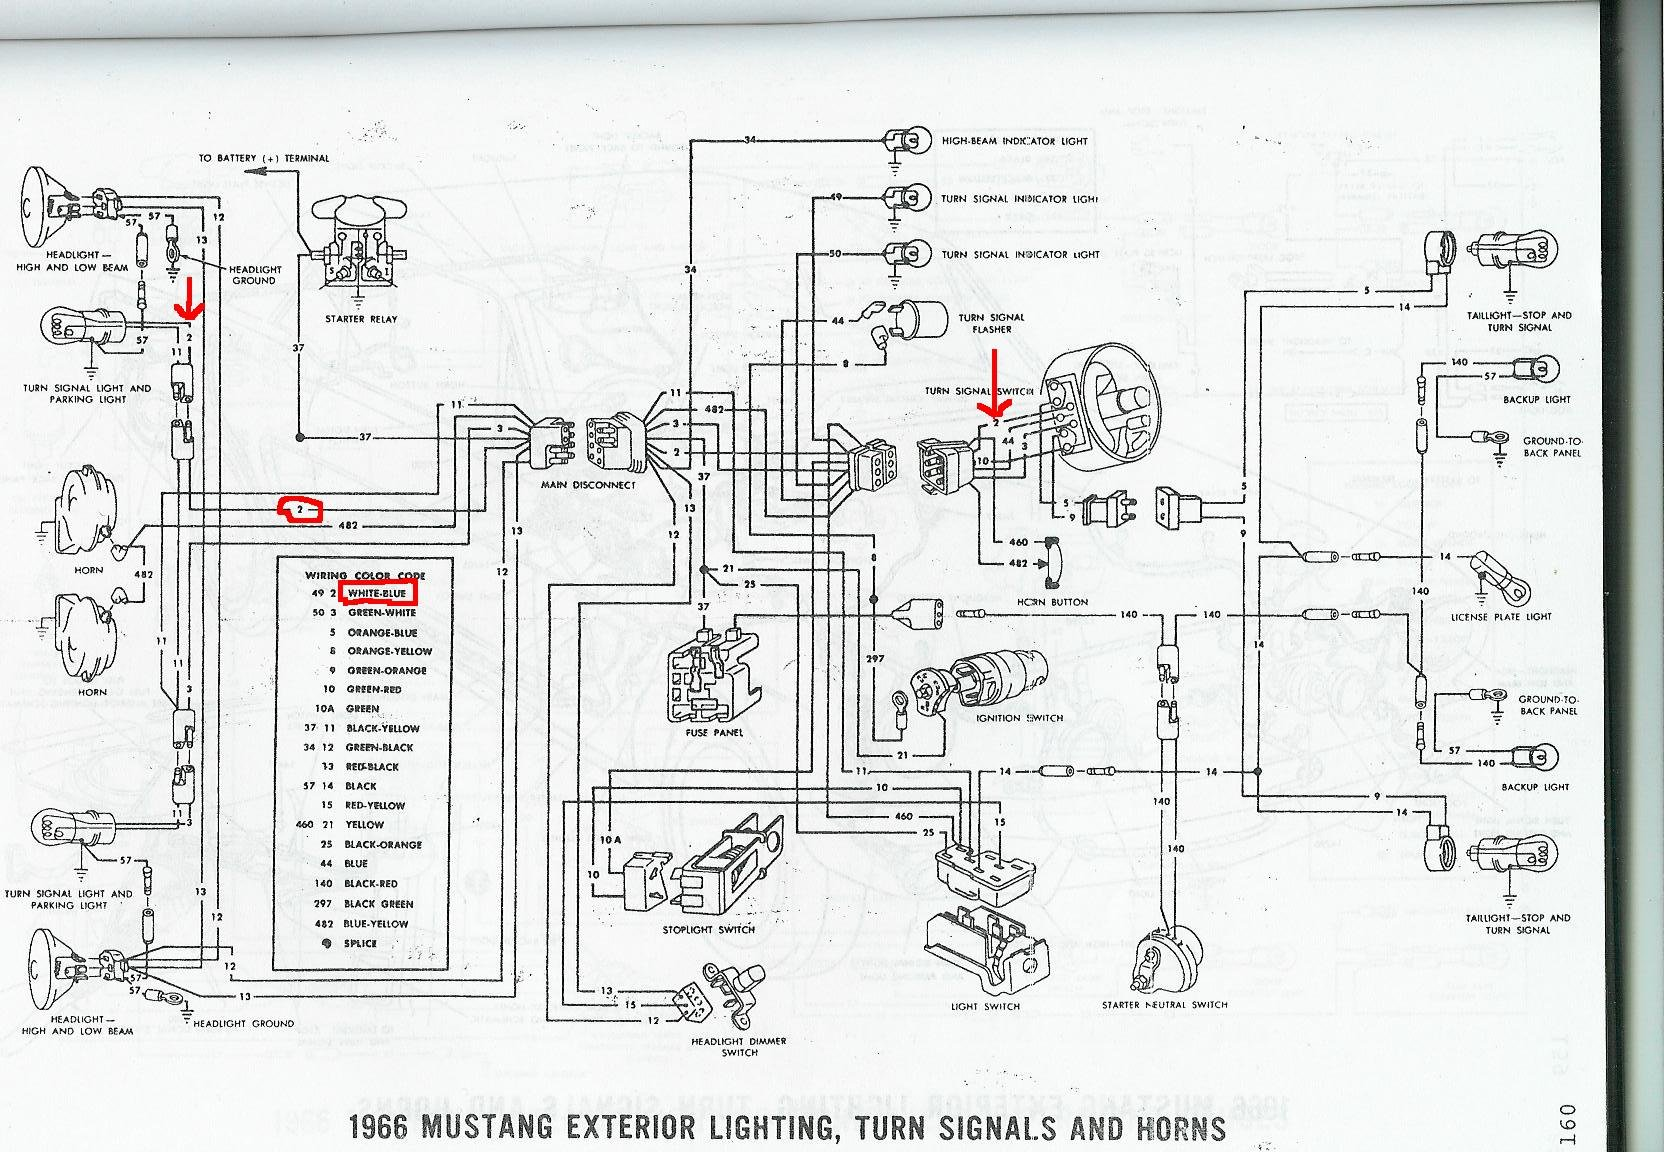 1965 mustang steering wheel wiring diagram 2 djl linda cosmetics de \u2022 66 Mustang Brake Diagram 66 ford steering wheel wiring diagram free picture wiring diagram rh 18 zeevissendewatergeus nl 1967 mustang power steering diagram 1965 mustang steering